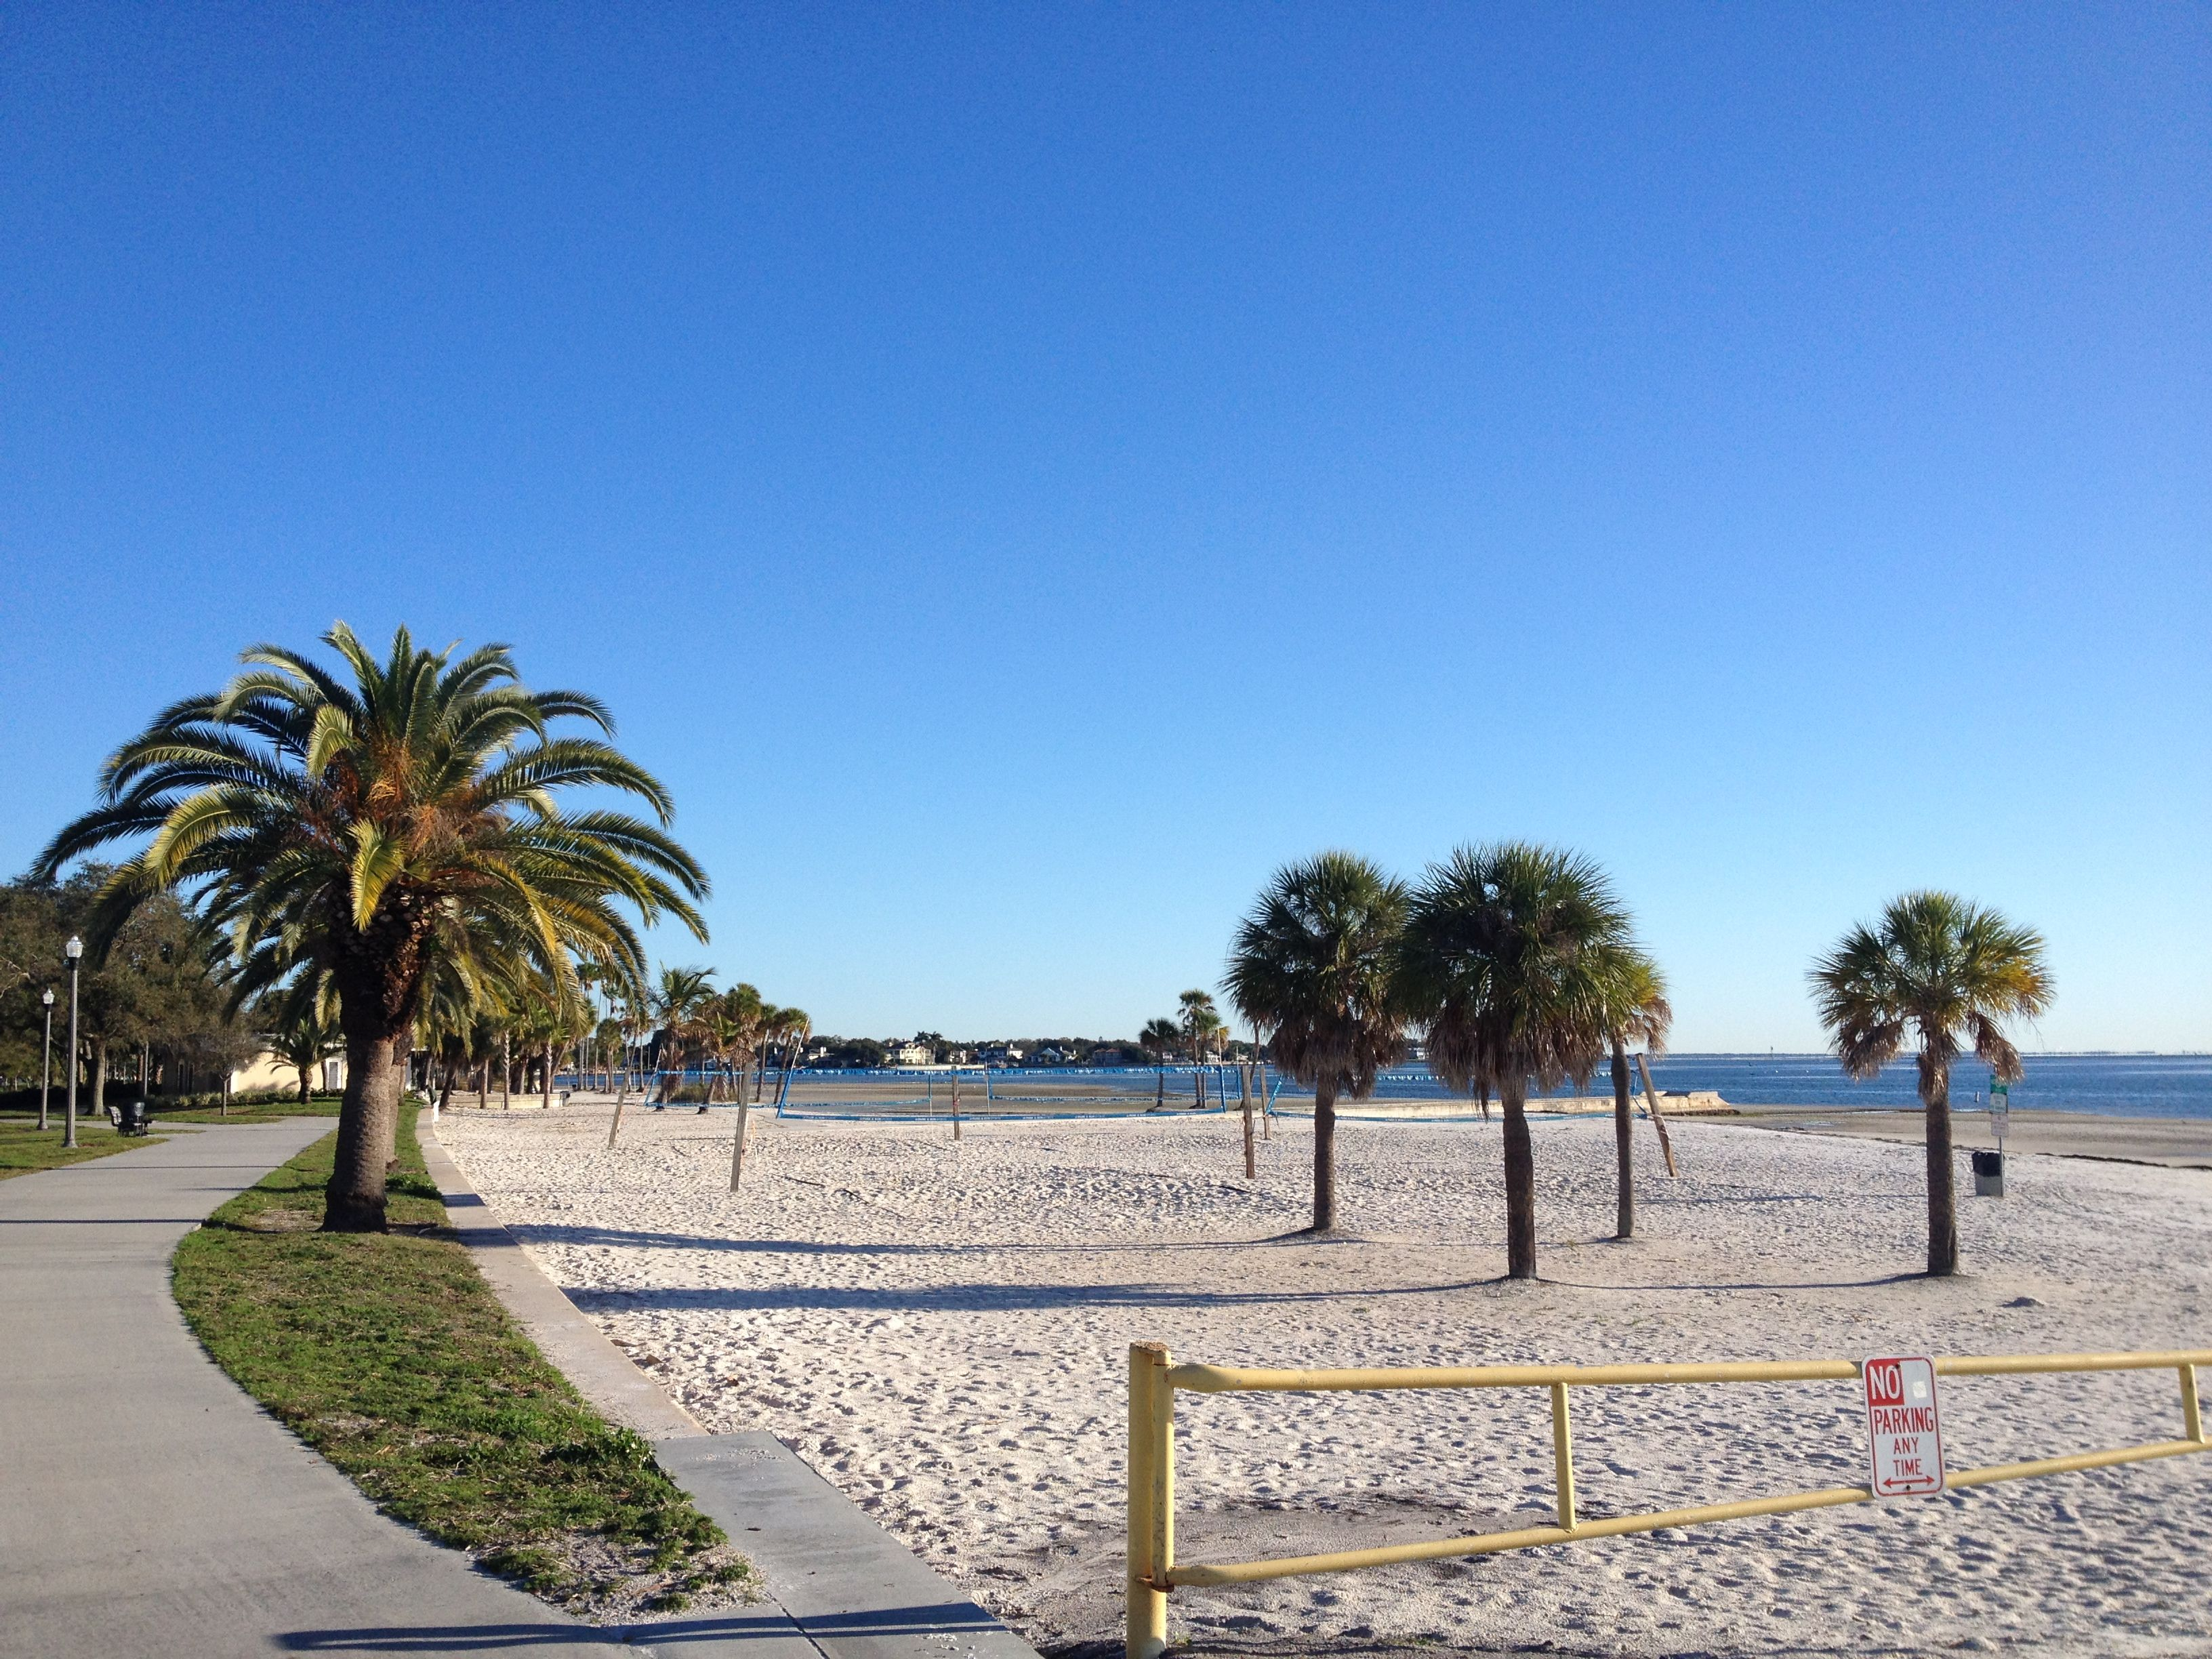 Play Some Volleyball At North Shore Park Stpete Clearwater Florida Petersburg St Petersburg